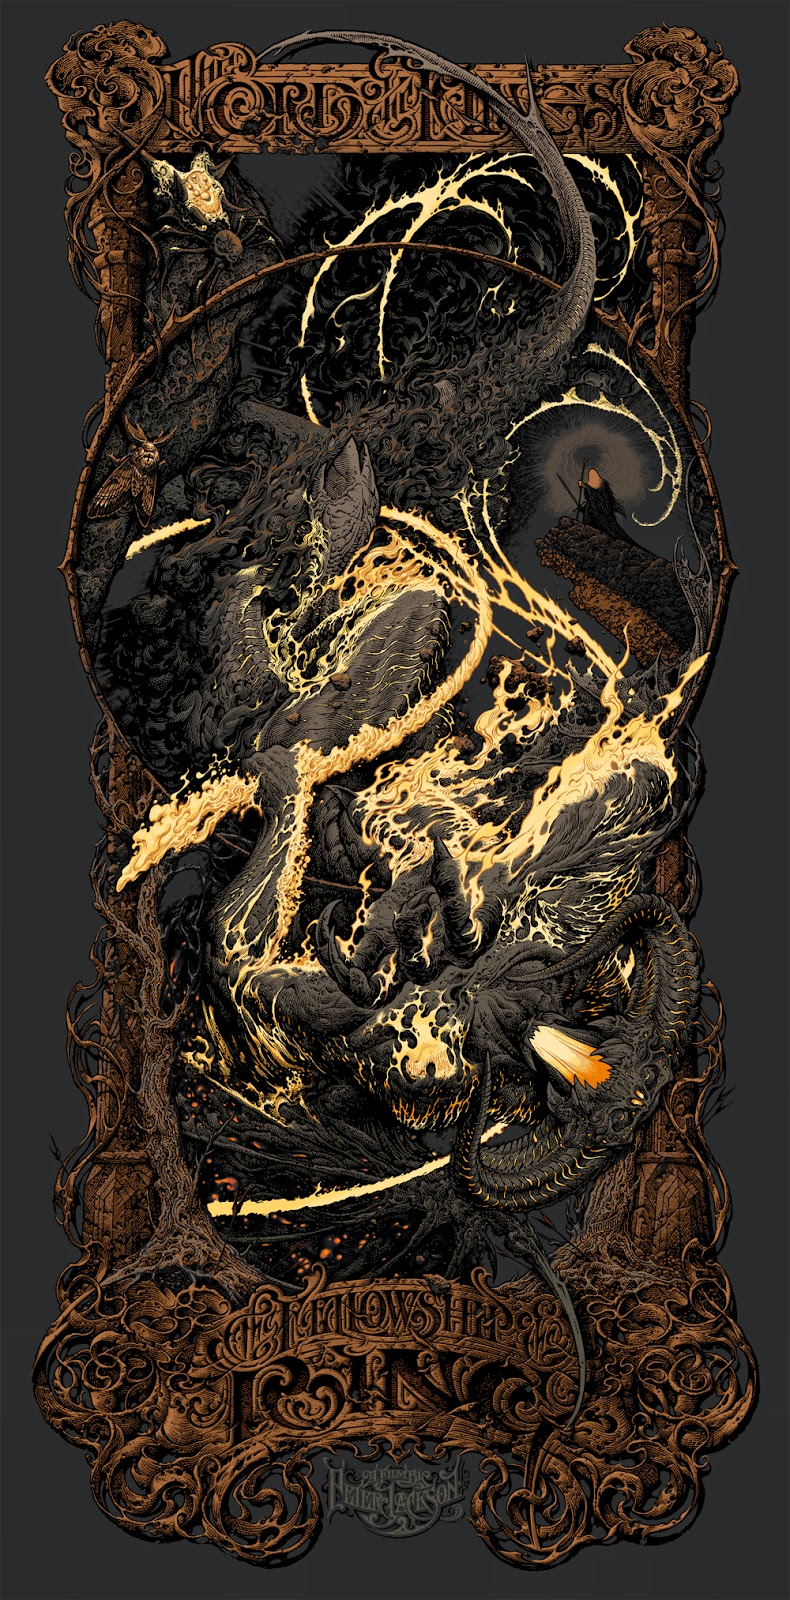 The Lord of the Rings: The Fellowship of the Ring Variant Screen Print by Aaron Horkey